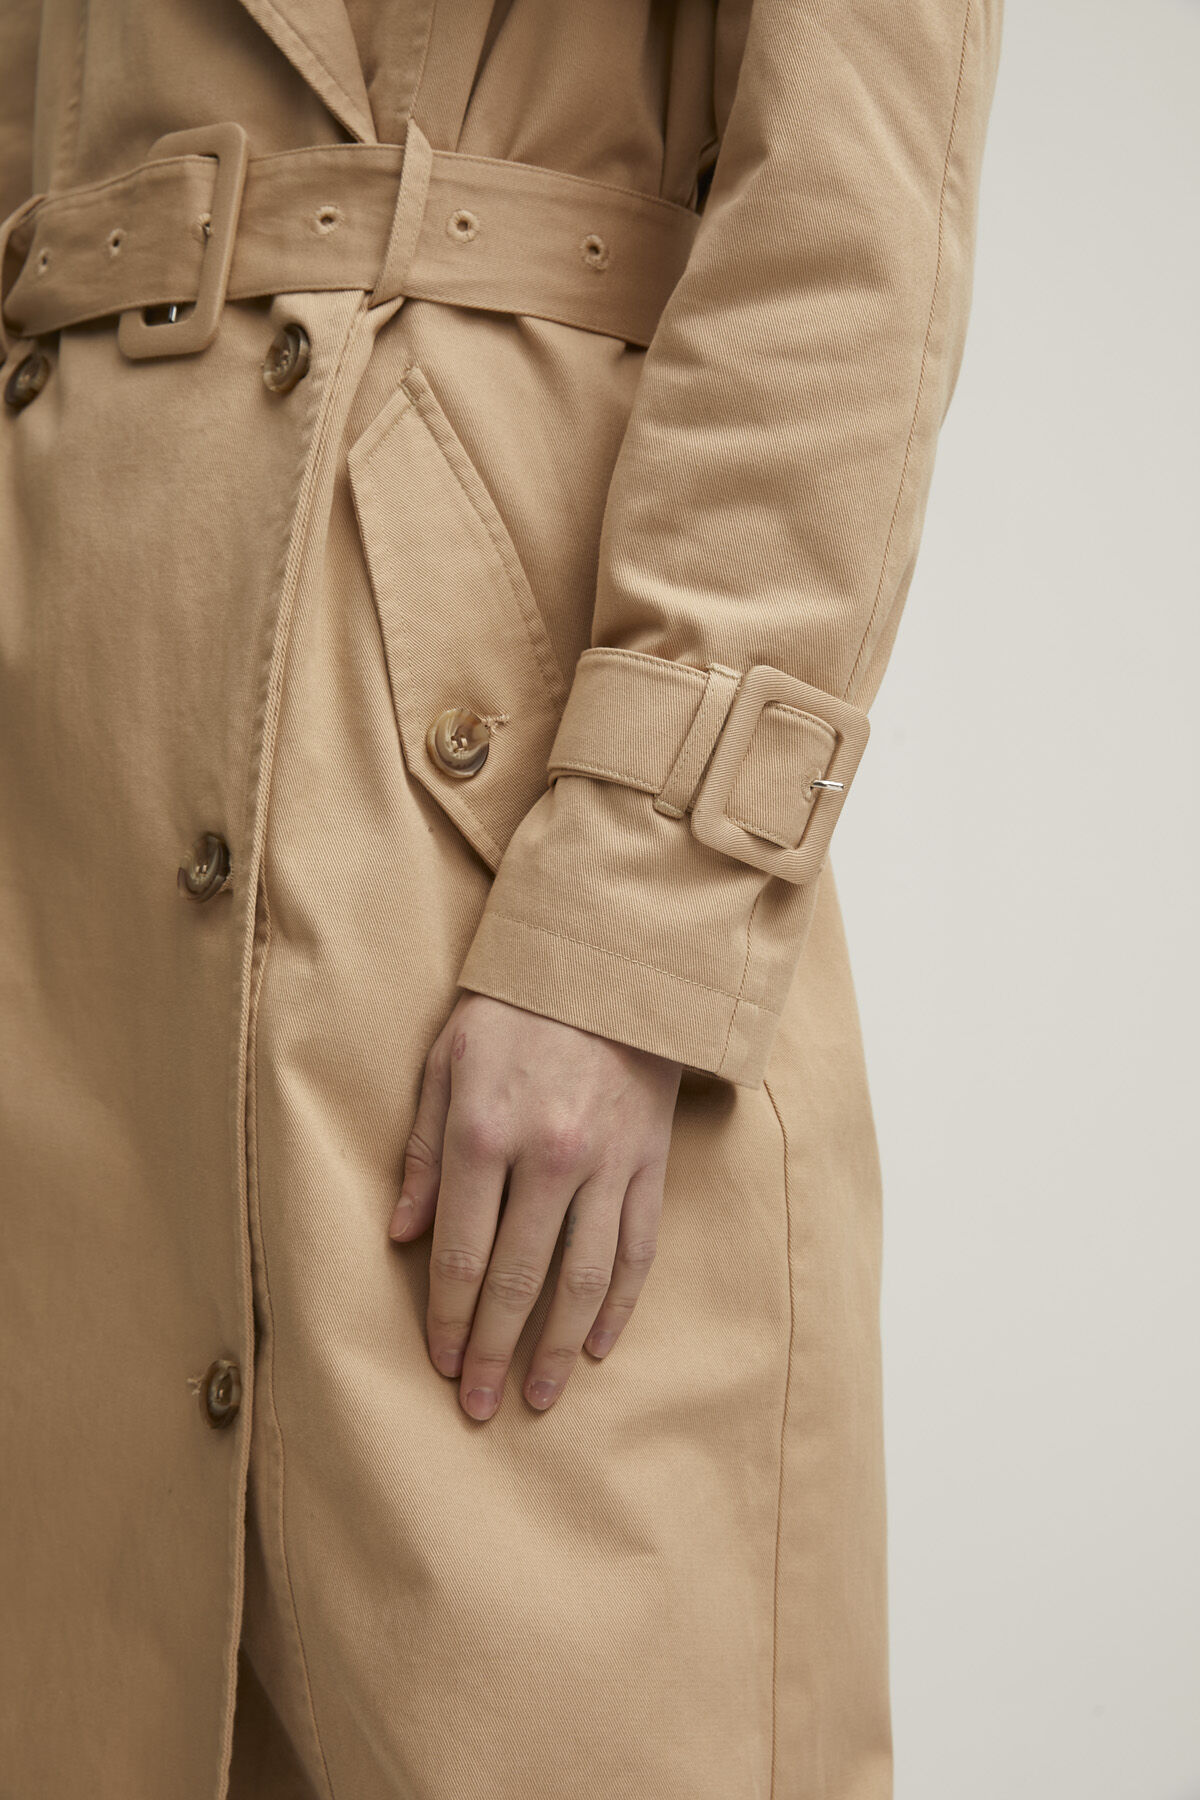 BELFAIRS TRENCH COAT Cotton Twill - Oversized Fit